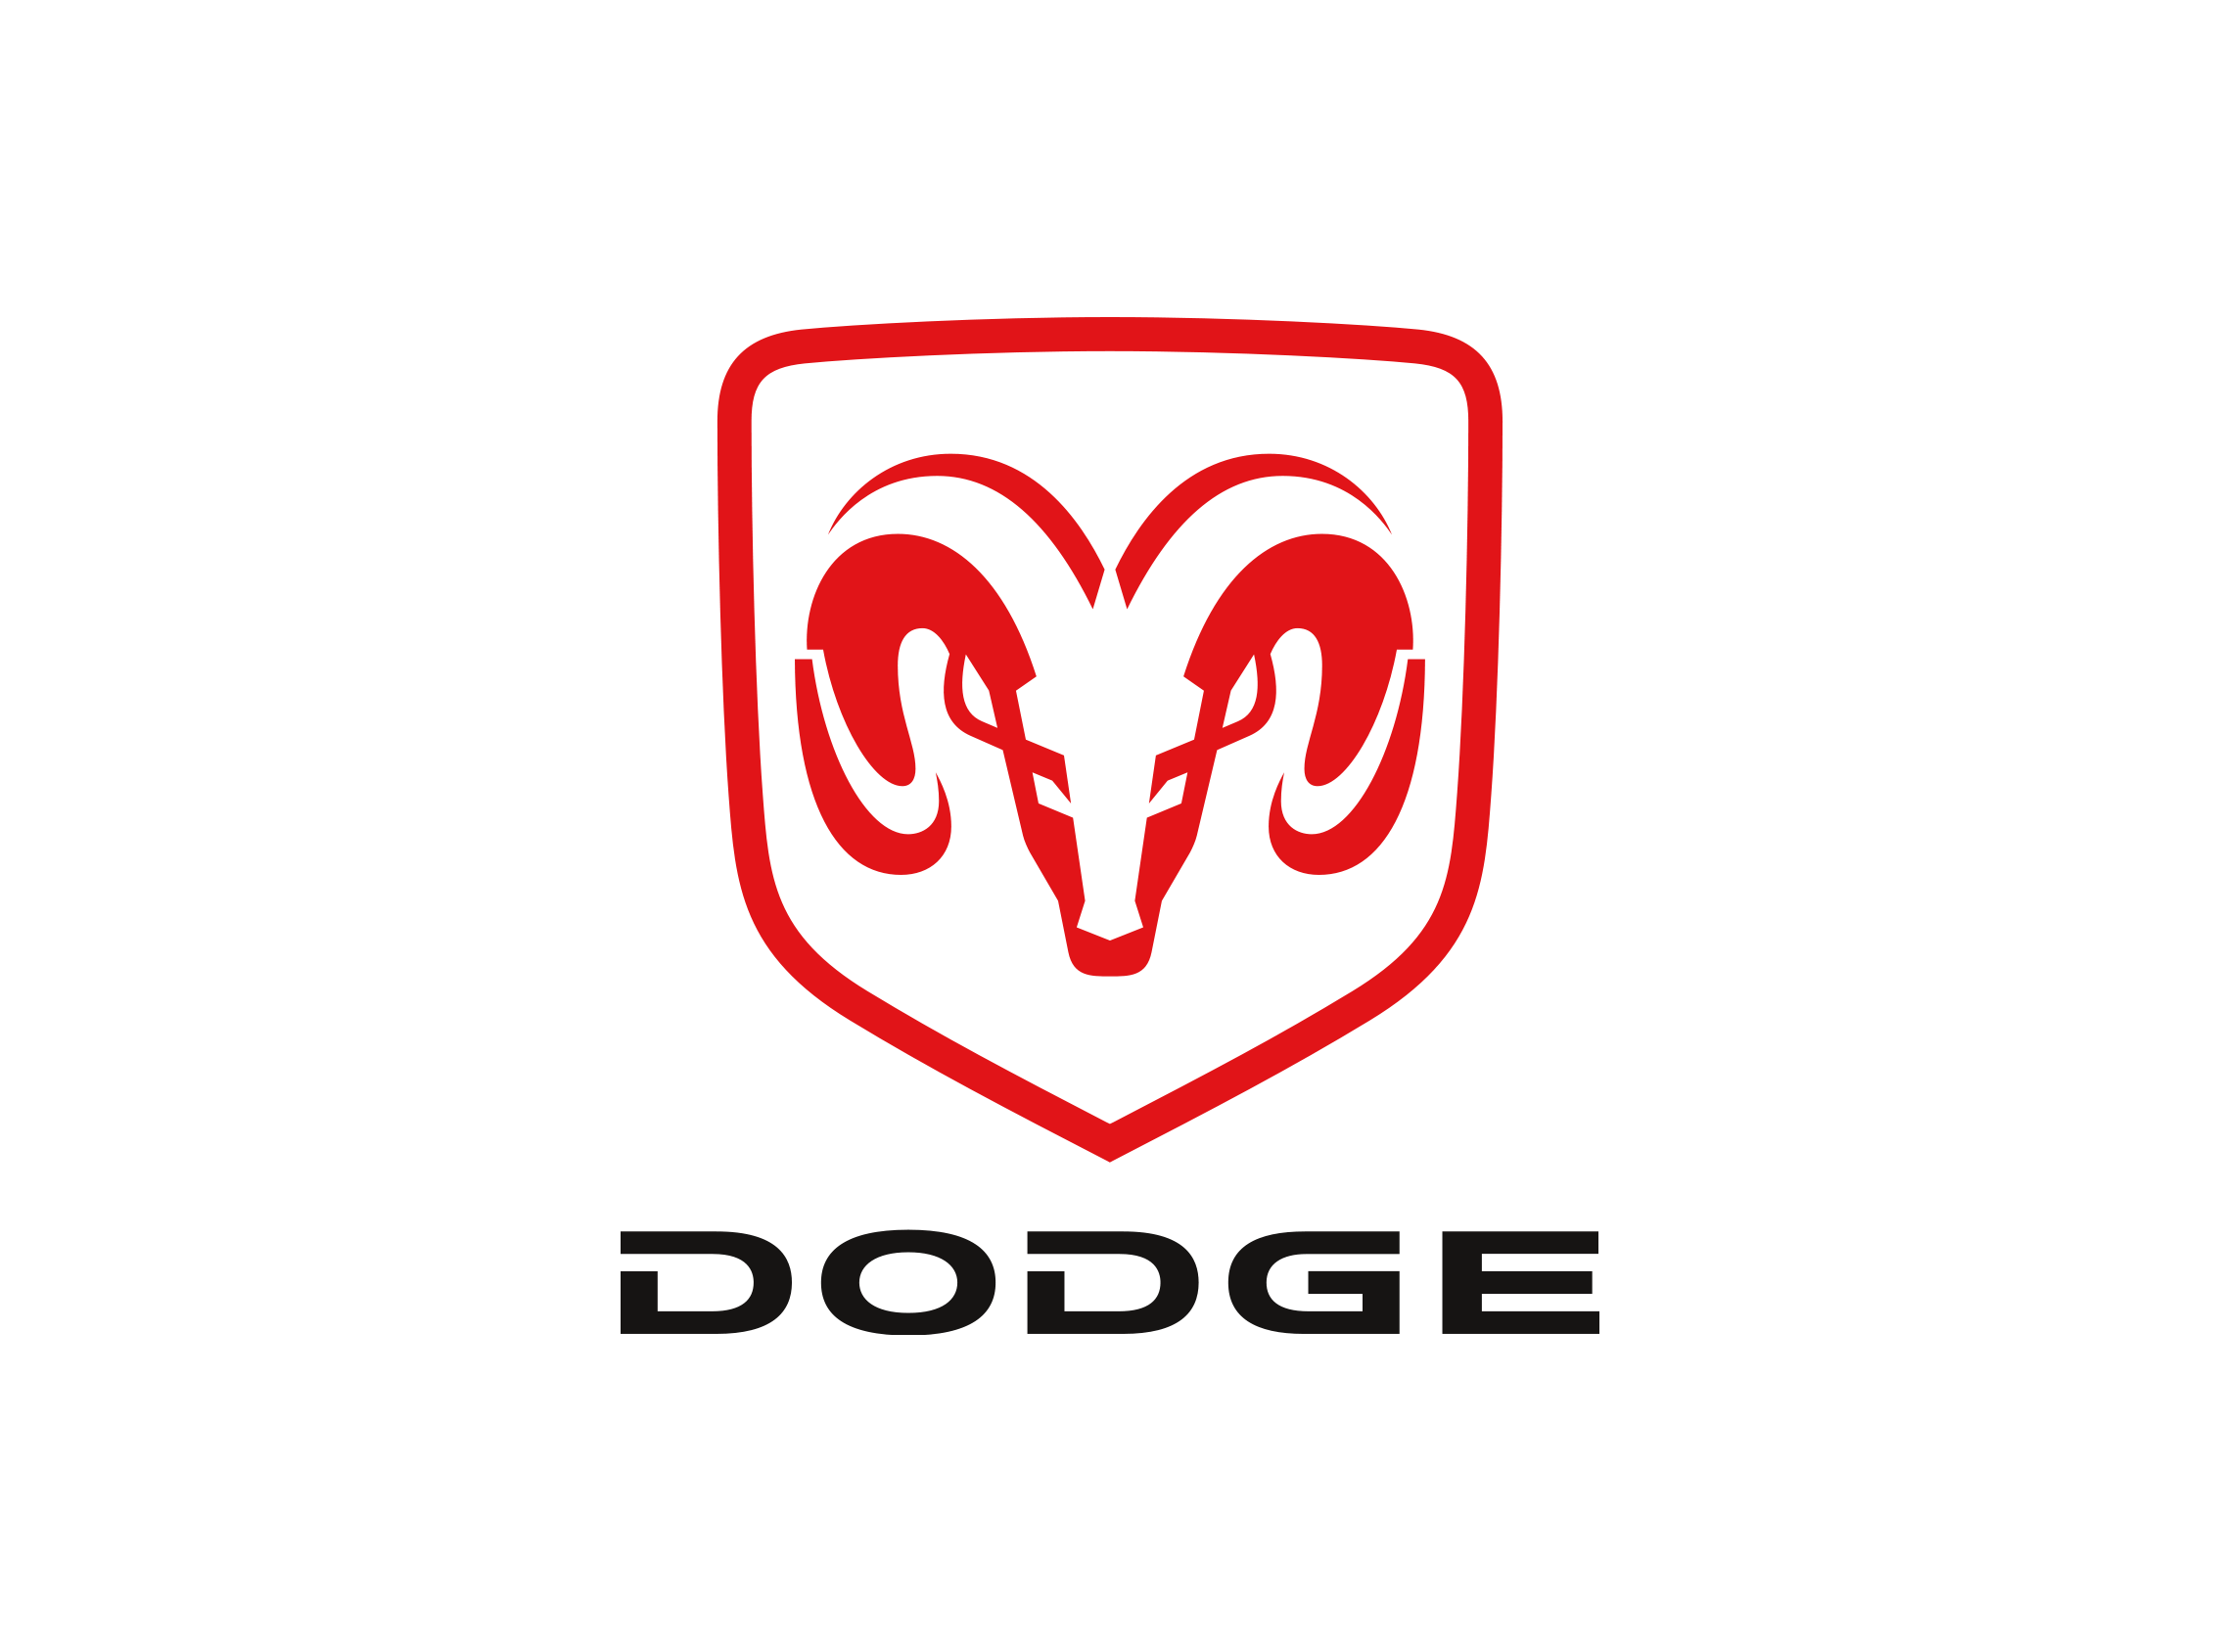 DODGE MOTOR IMPORT BRANDS VOITURE IMPORT USA MIAMI IMPORT VOITURE EUROP IMPORT USA MOTOR IMPORT7 - MASERATI importation voiture des Etats Unis MASERATI votre mandataire automobile usa